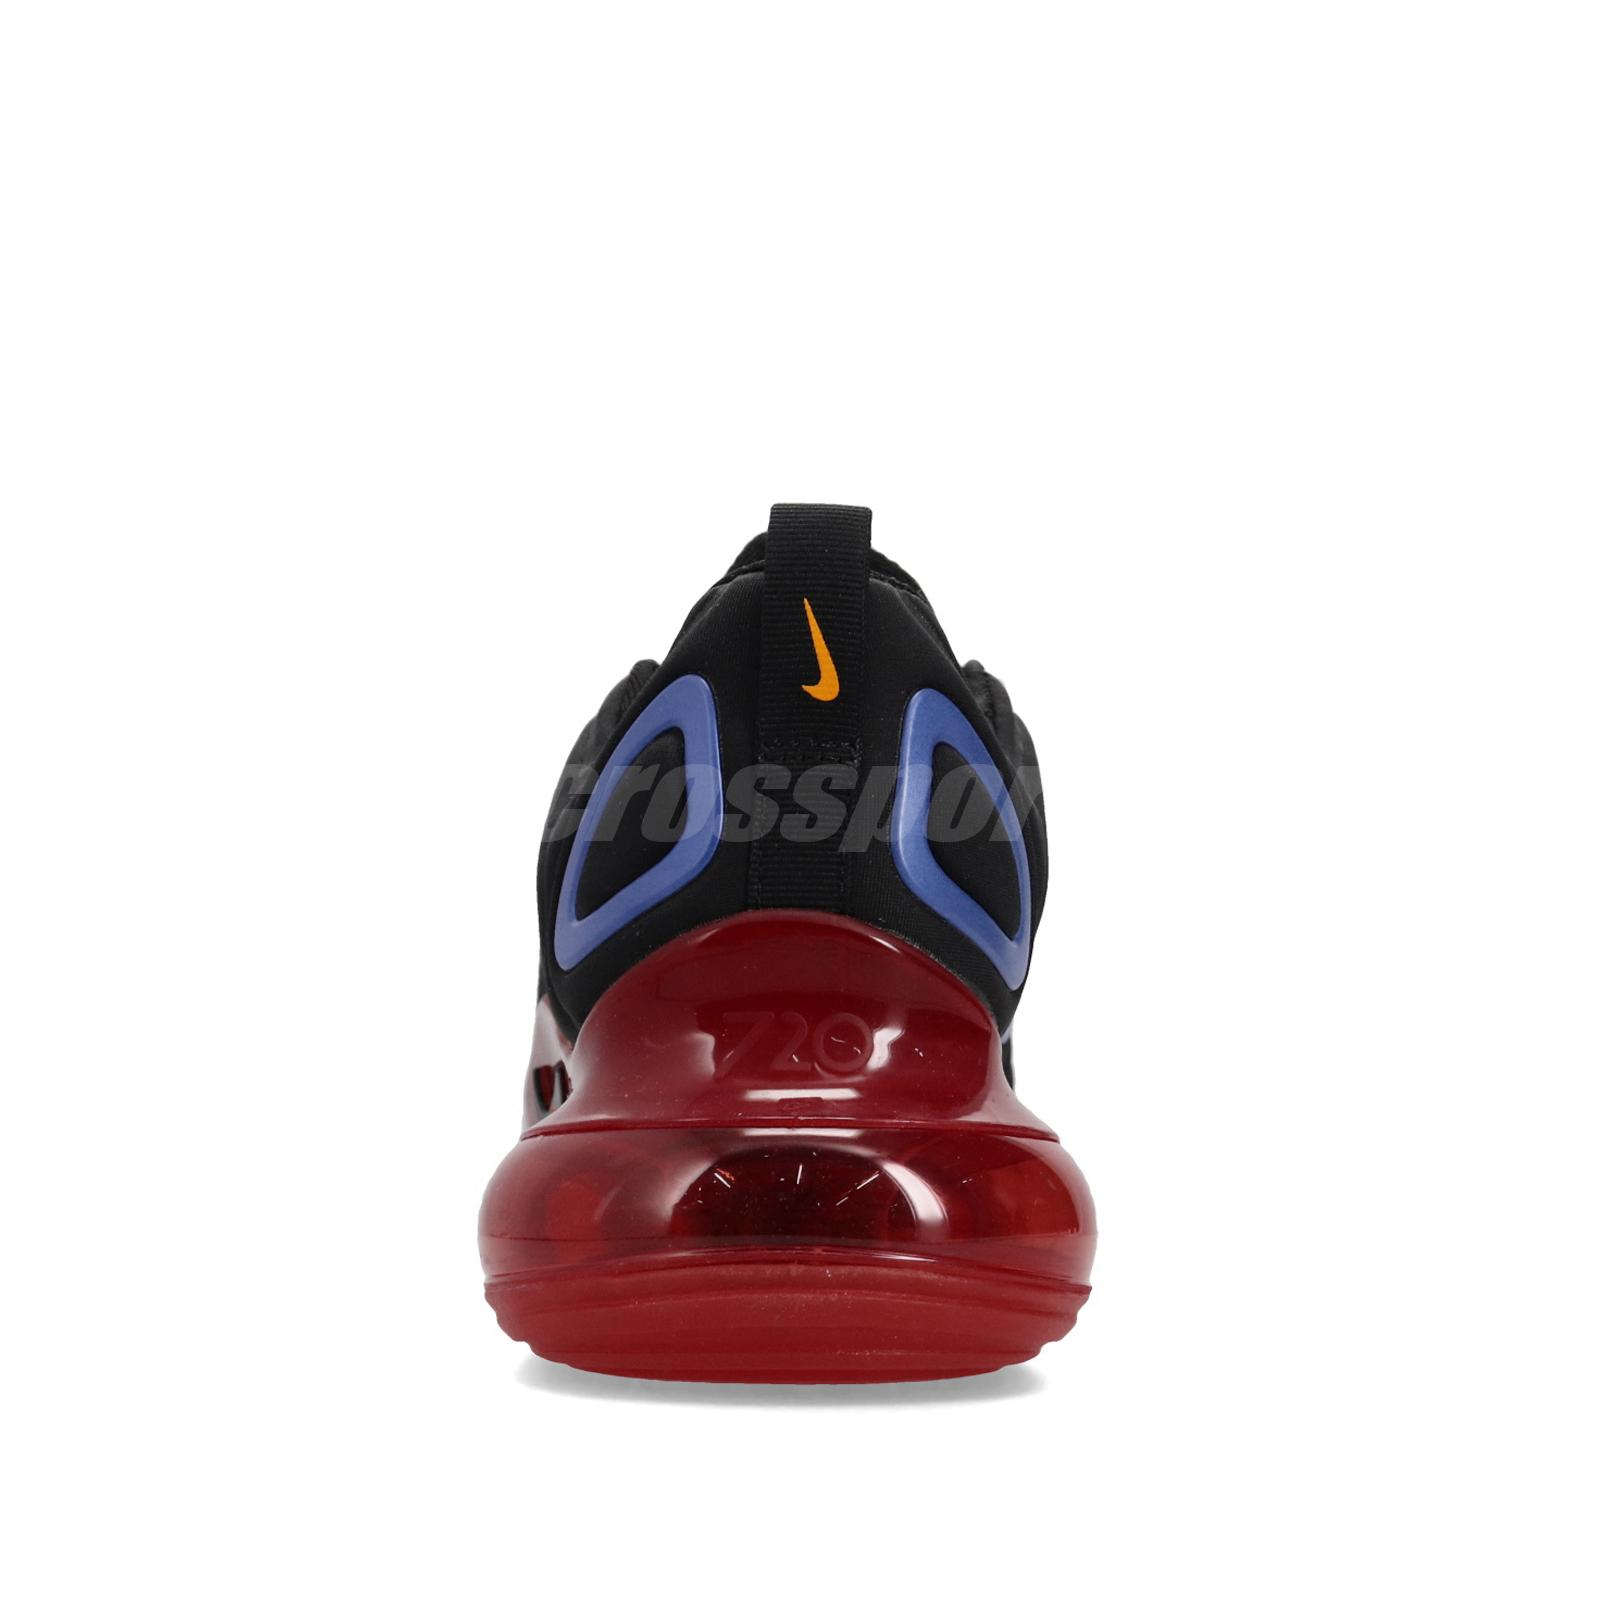 Details about Nike Air Max 720 Black Blue Red Yellow Men Lifestyle Shoes Sneakers AO2924 014